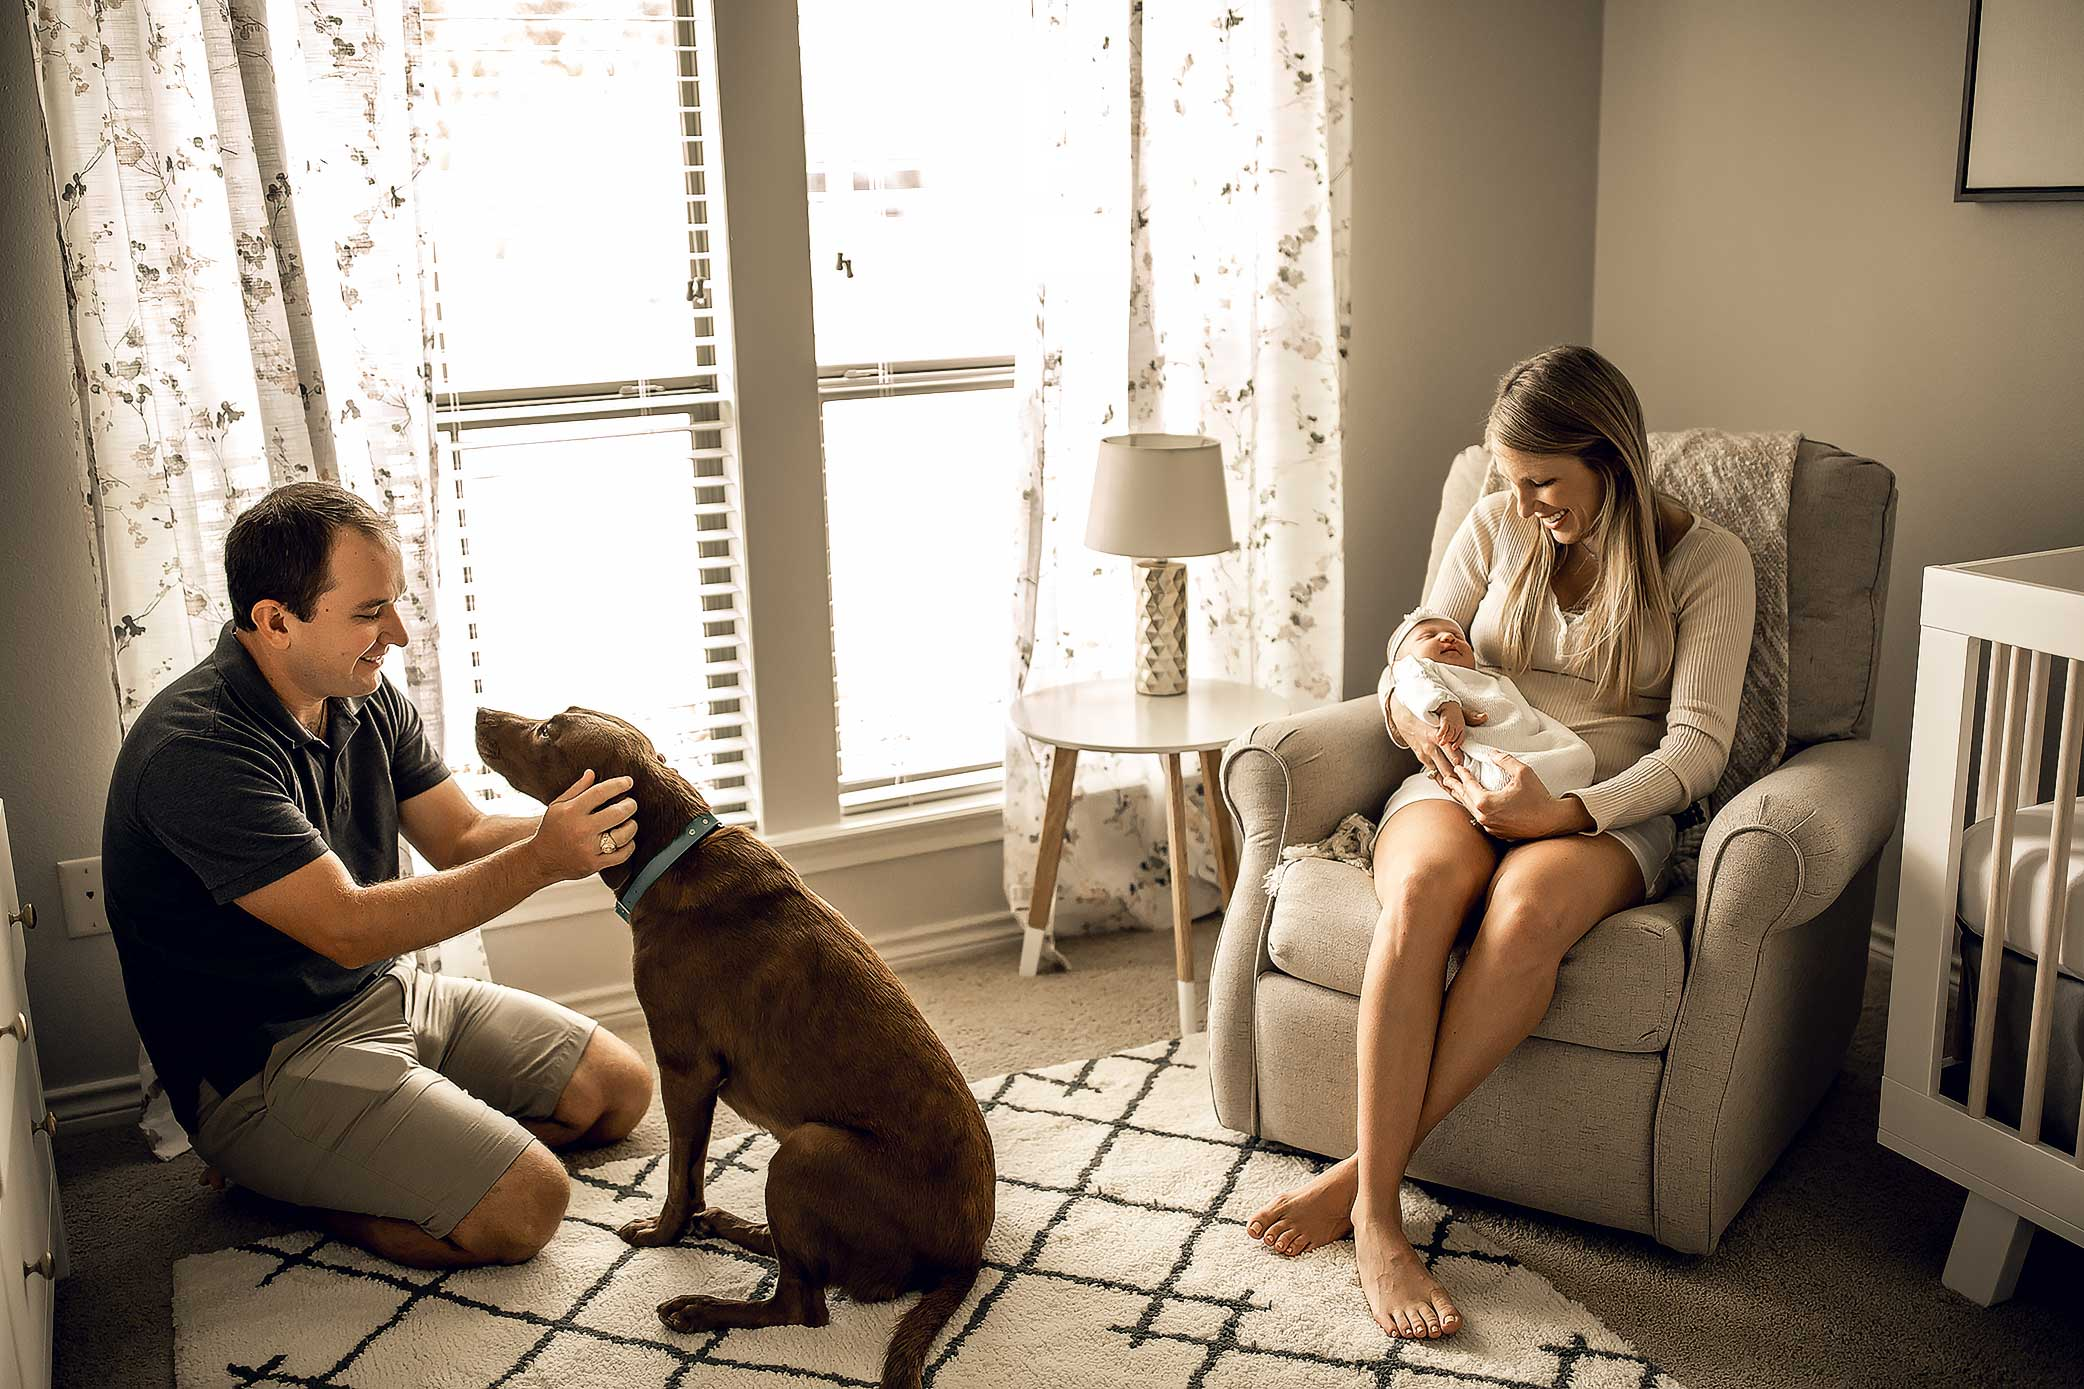 shelby-schiller-photography-reviews-at-home-lifestyle-newborn-with-dog-in-nursery.jpg